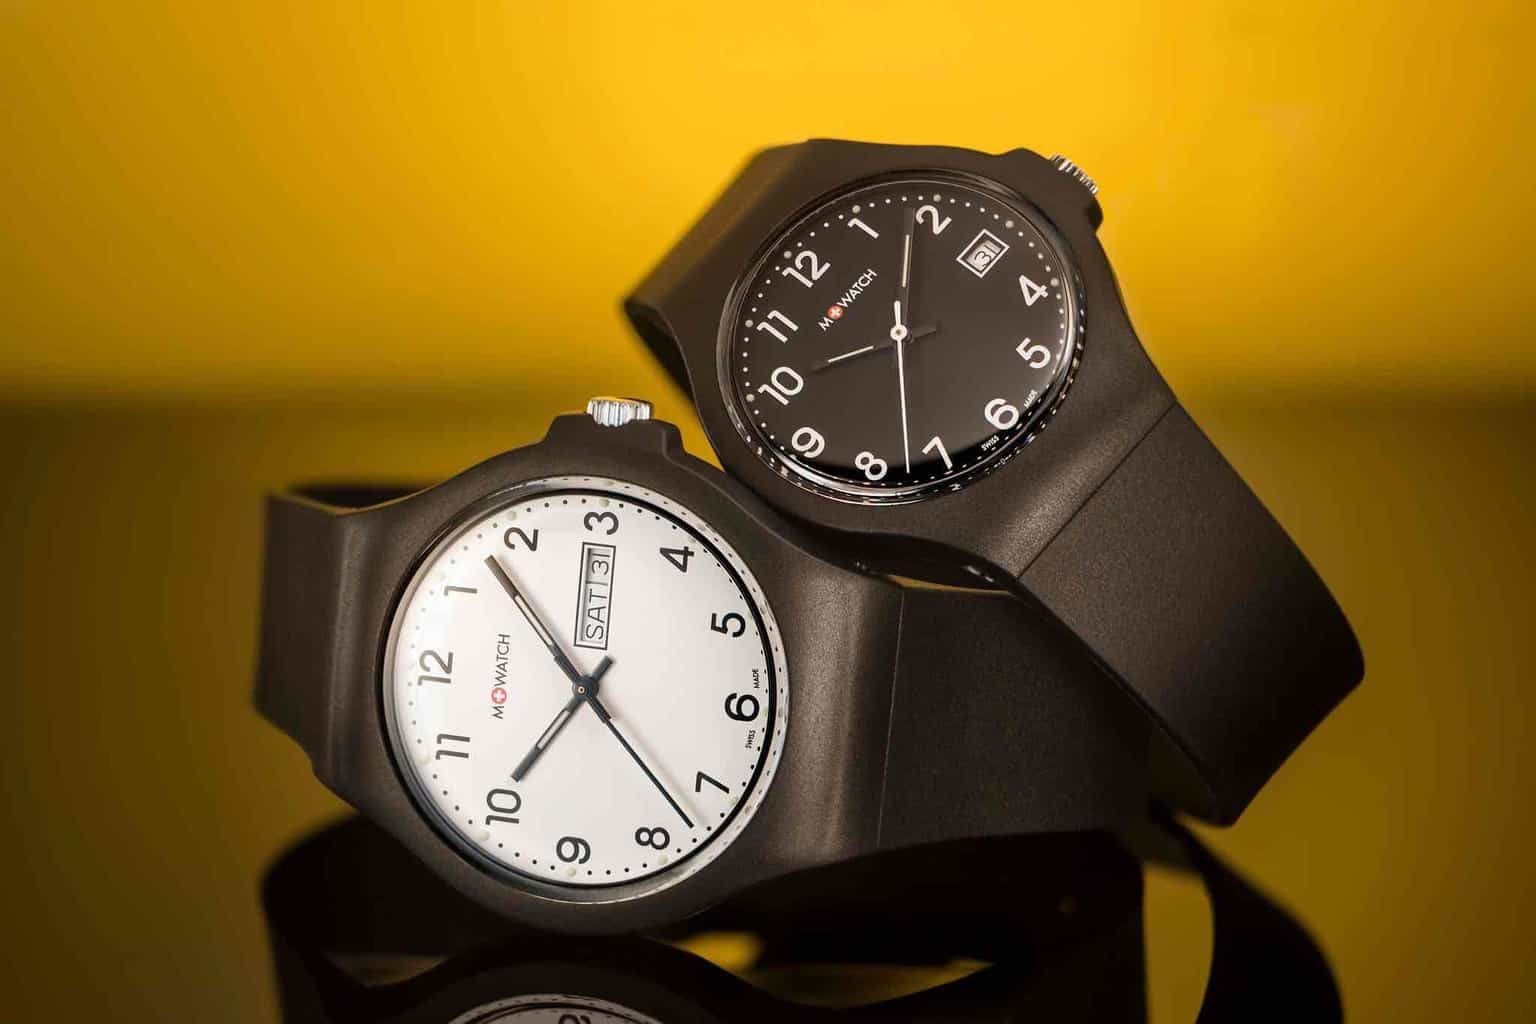 The Mondaine M + WATCH Collection